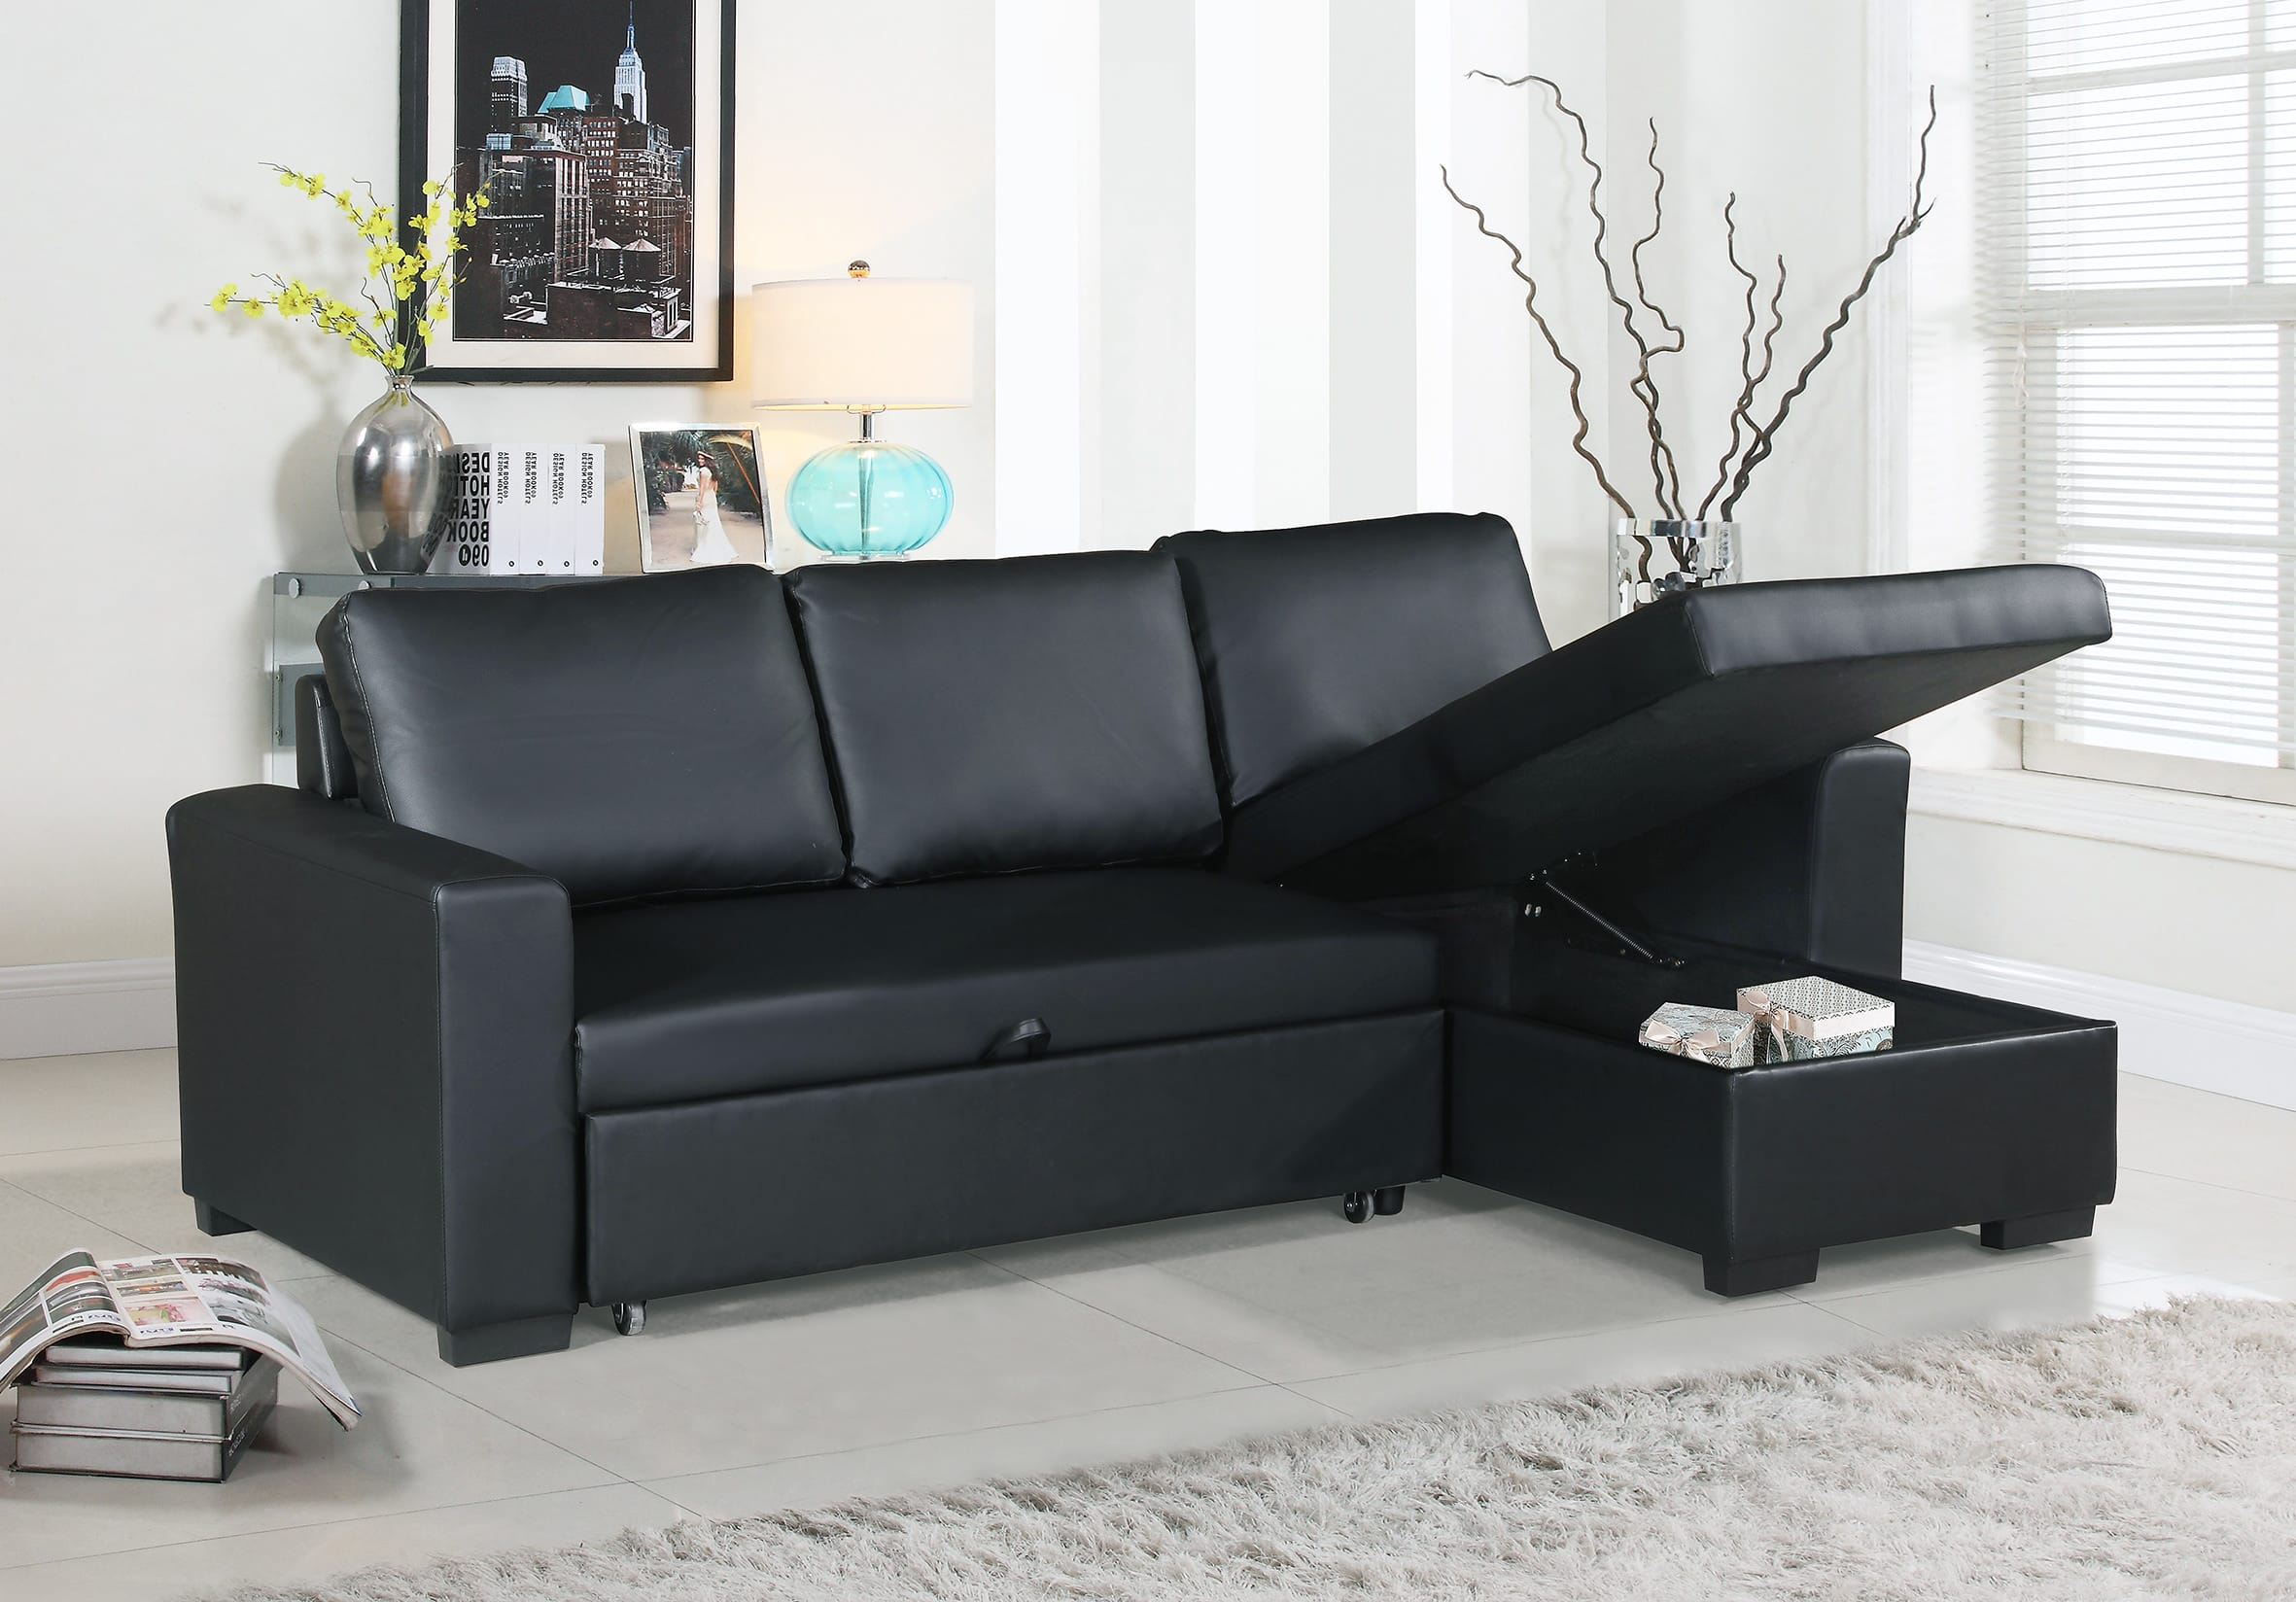 F6890 Black Convertible Sectional Sofa by Poundex